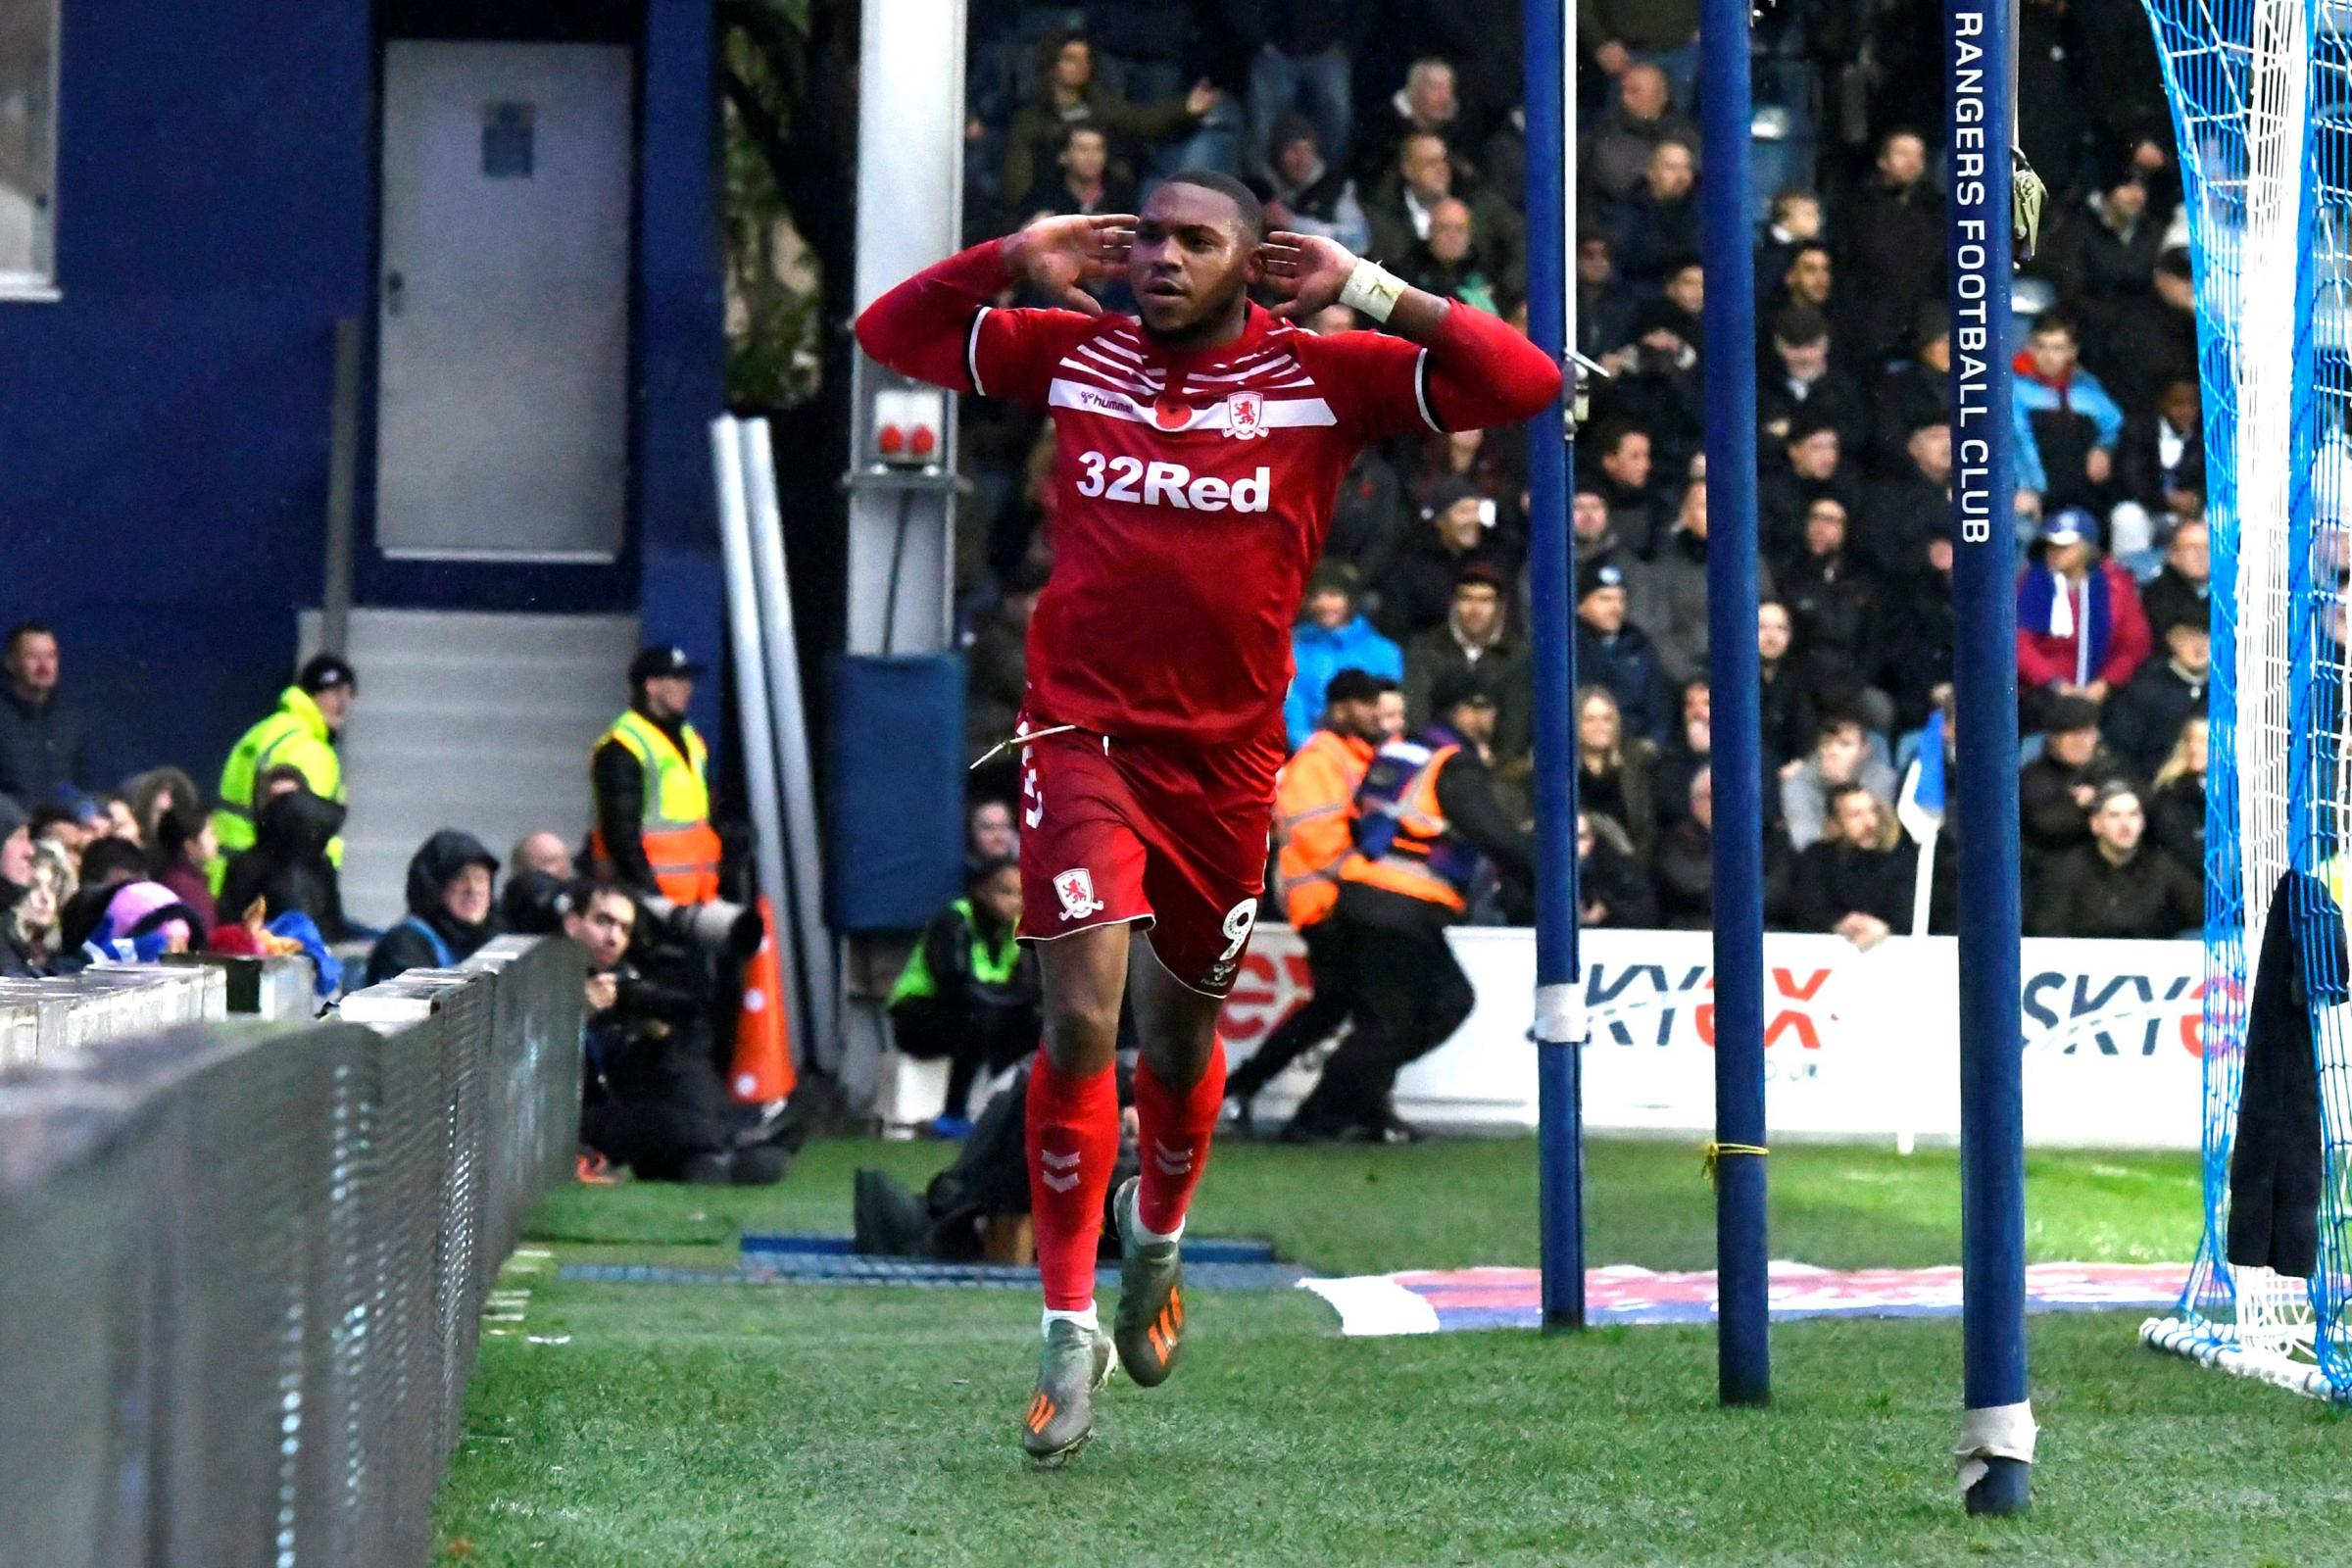 The key talking points from Middlesbrough's 2-2 draw with QPR